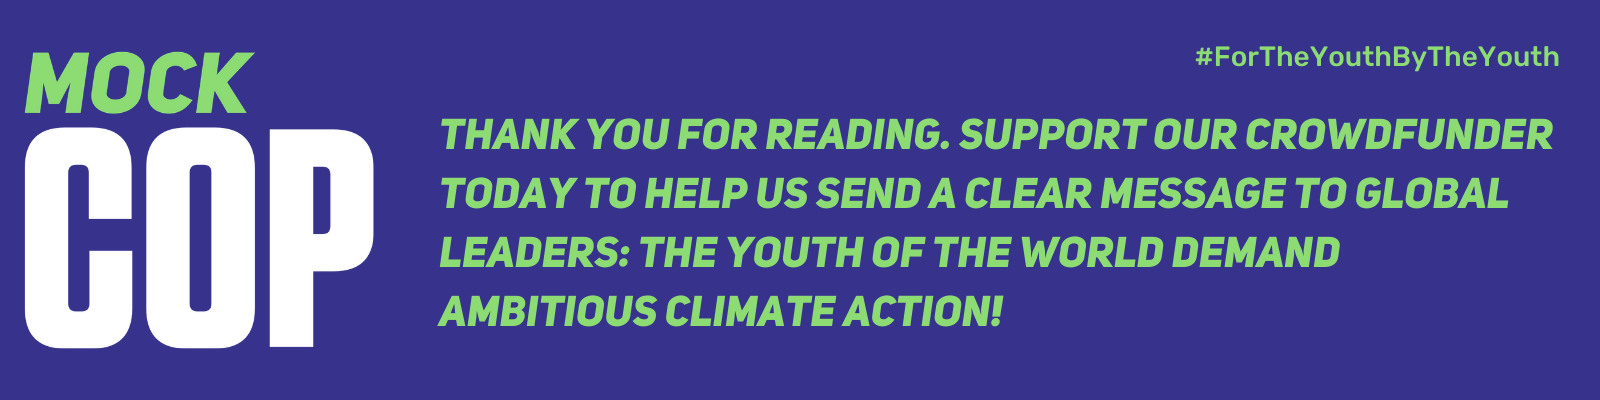 Thank you for reading. Support our crowdfunder today to help us send a clear message to global leaders: the youth of the world demand ambitious climate action!